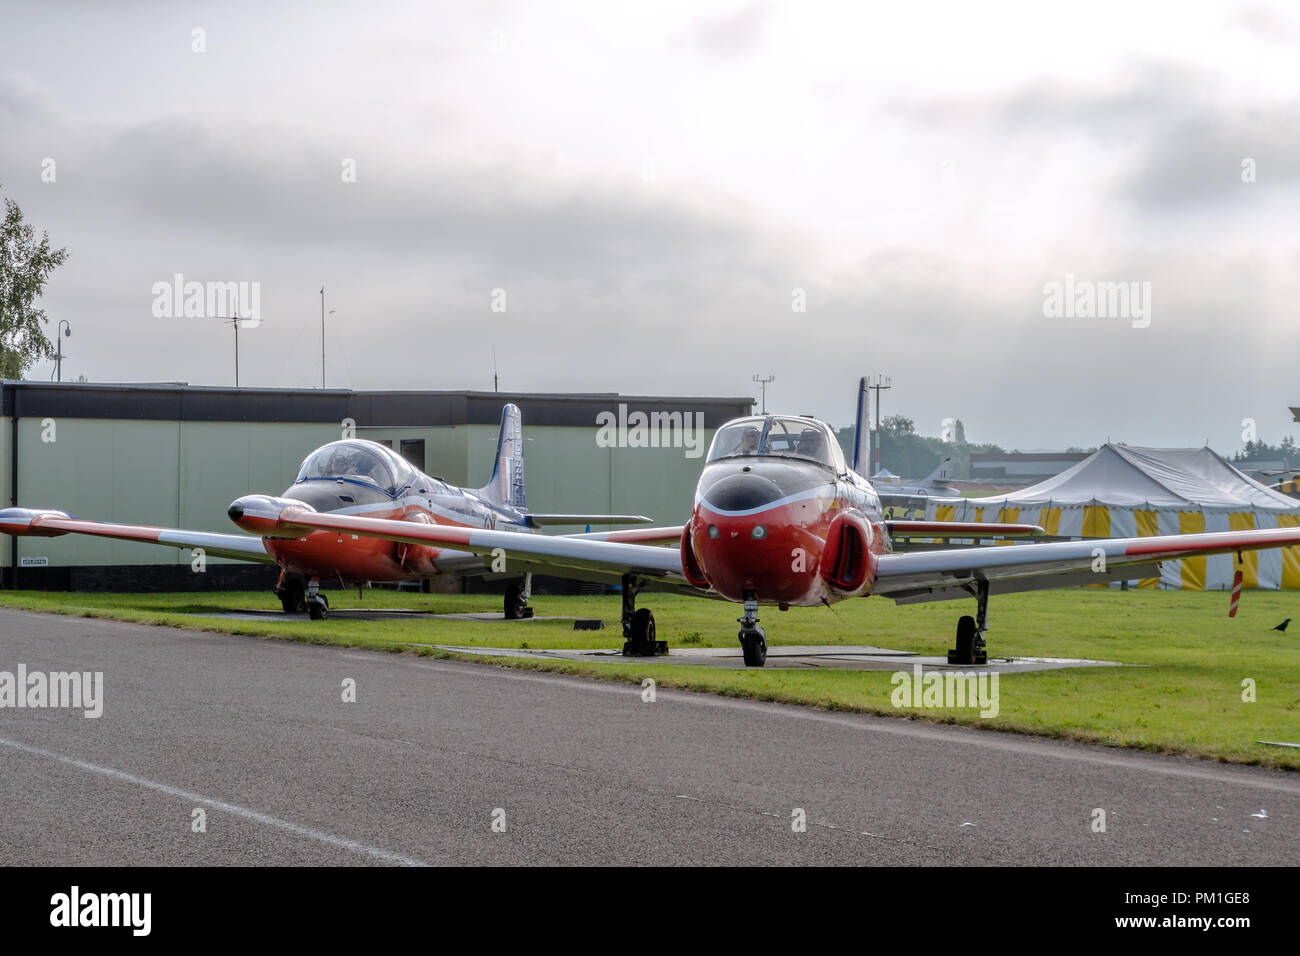 COSFORD, UK, JUNE 6 2018: A photograph documenting a pair of BAC Jet Provosts as they stand at RAF Cosford - Stock Image